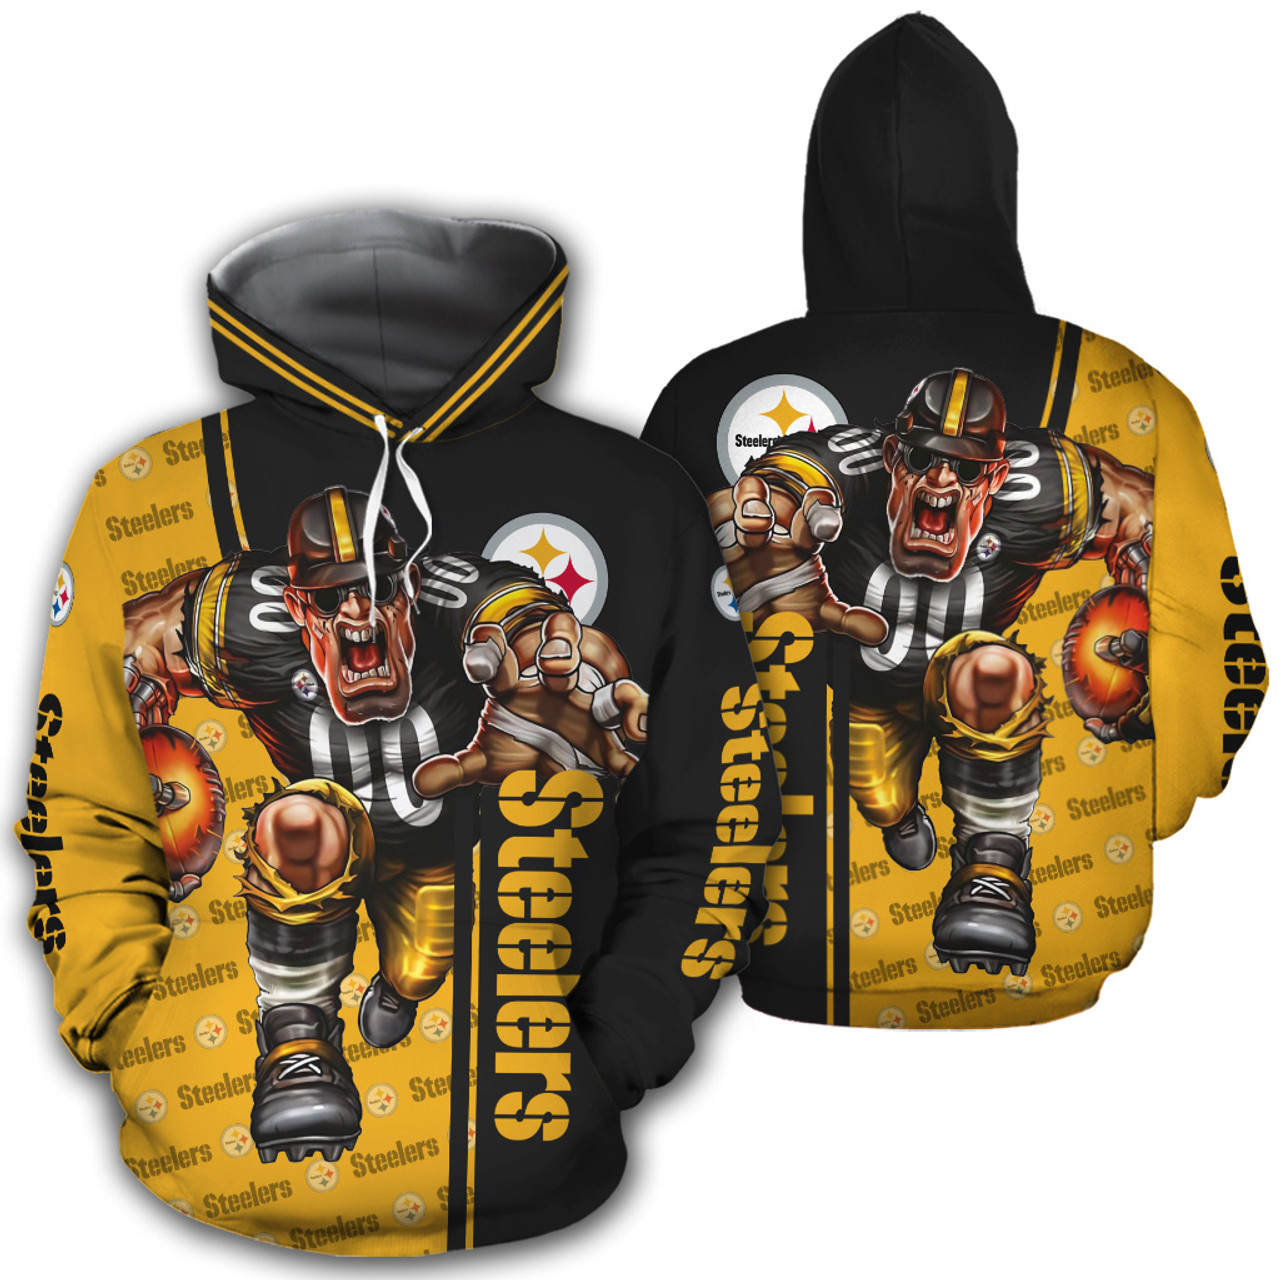 **(OFFICIAL-N.F.L.PITTSBURGH-STEELERS-PULLOVER-HOODIES/OFFICIAL-STEELERS-LOGOS & OFFICIAL-STEELERS-CLASSIC-TEAM-COLORS/NICE-3D-DETAILED-GRAPHIC-PRINTED-DOUBLE-SIDED/ALL-OVER-HOODIE-PRINTED-DESIGN/WARM-PREMIUM-N.FL.STEELERS-TEAM-GAME-DAY-PULLOVER-HOODIES)**